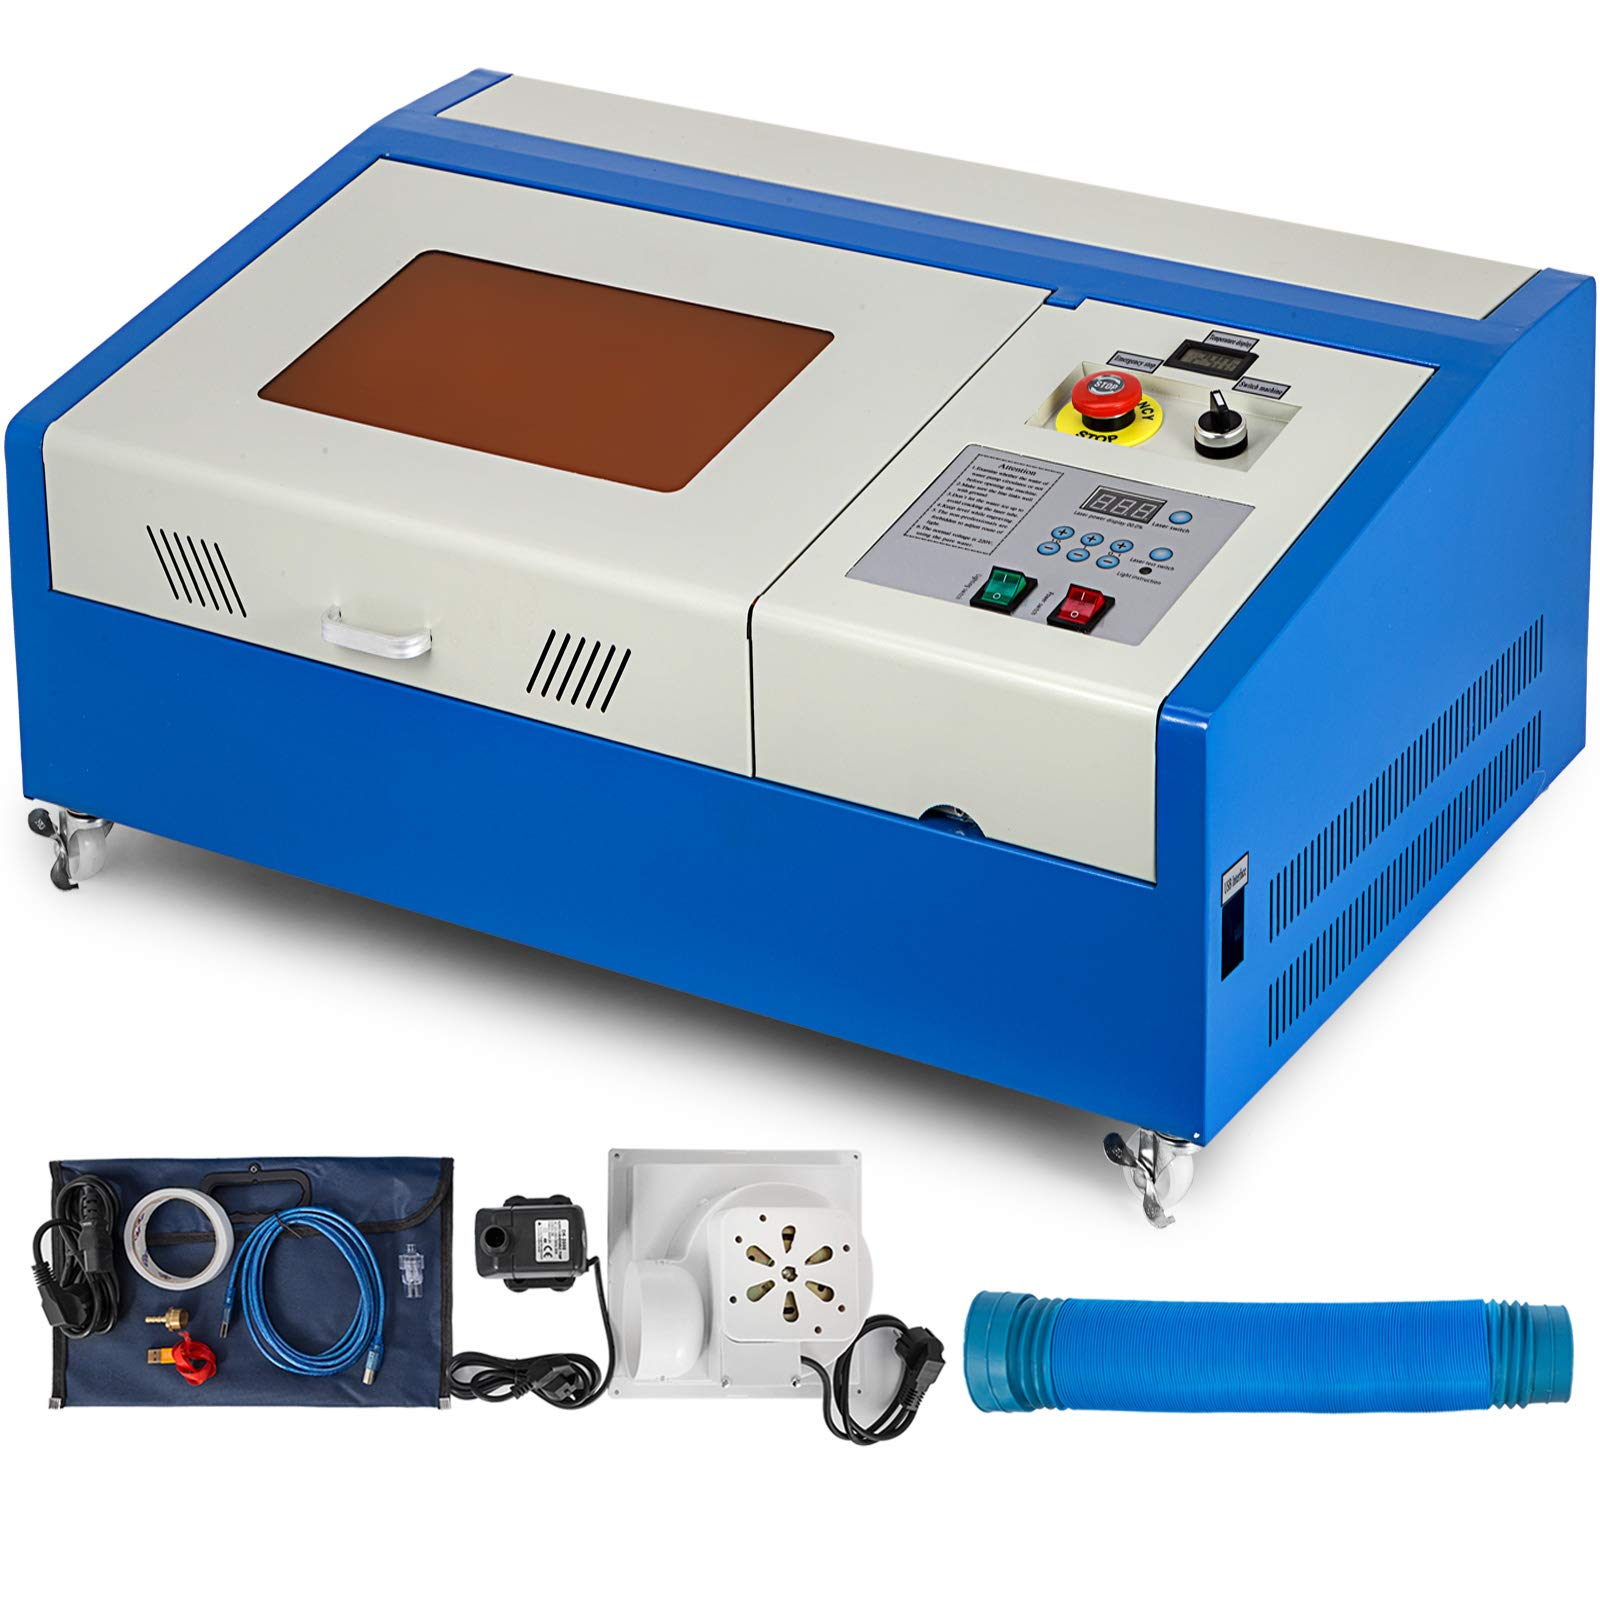 Mophorn Laser Engraving Machine 40W CO2 Laser Engraver 12x8 Inch Laser Cutting Machine USB Port LCD Display with Rotate Wheels(40W 300x200) by Mophorn (Image #2)